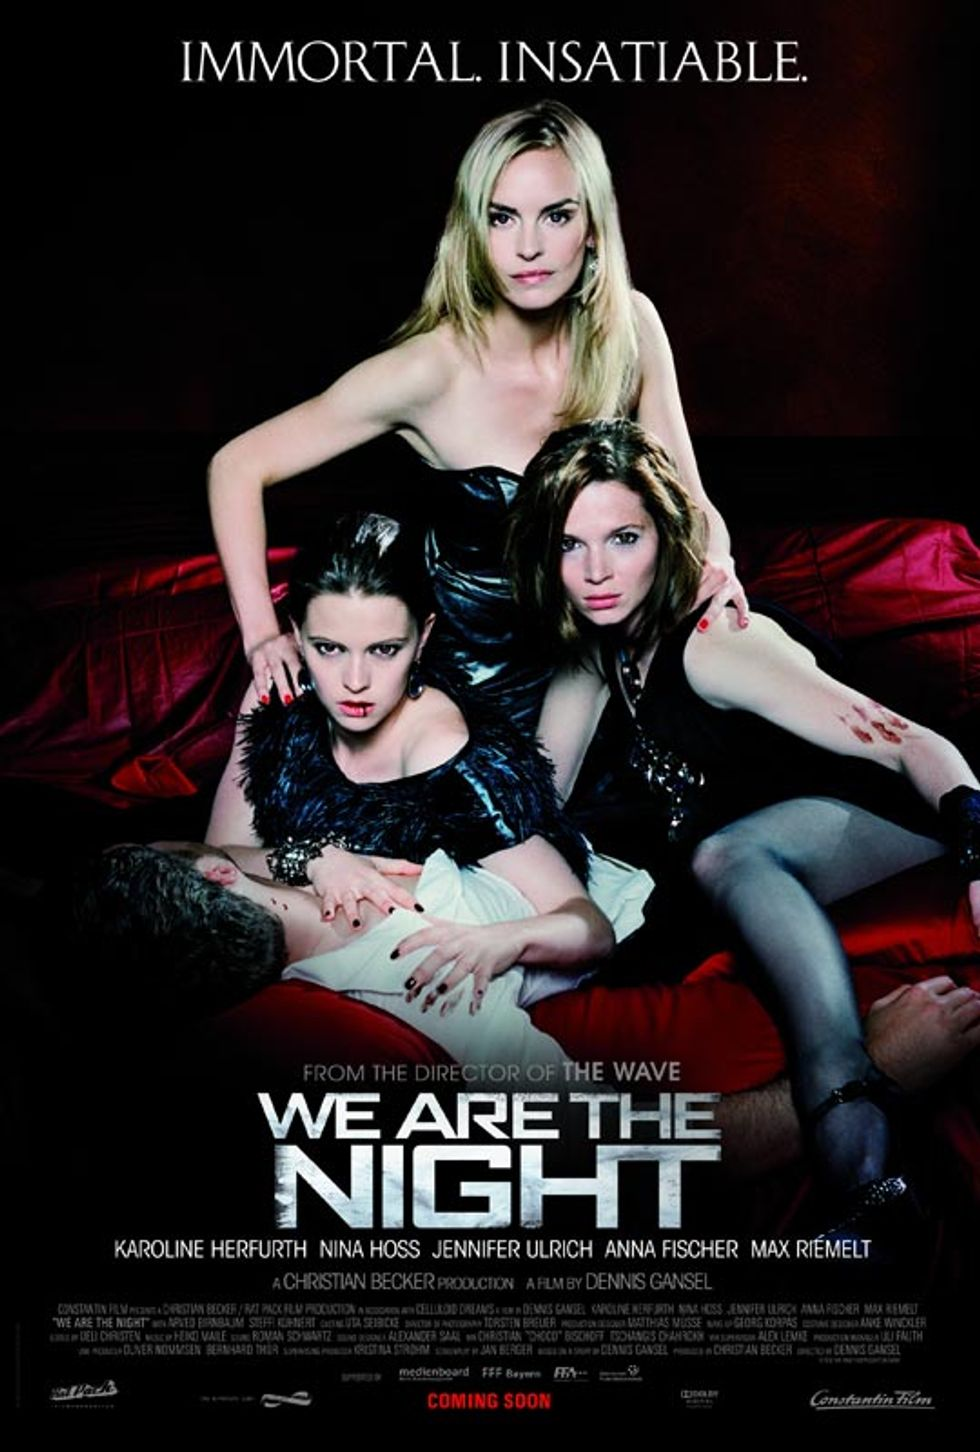 Sexy, Stylish Girl Vampire Film We Are The Night Opens Friday